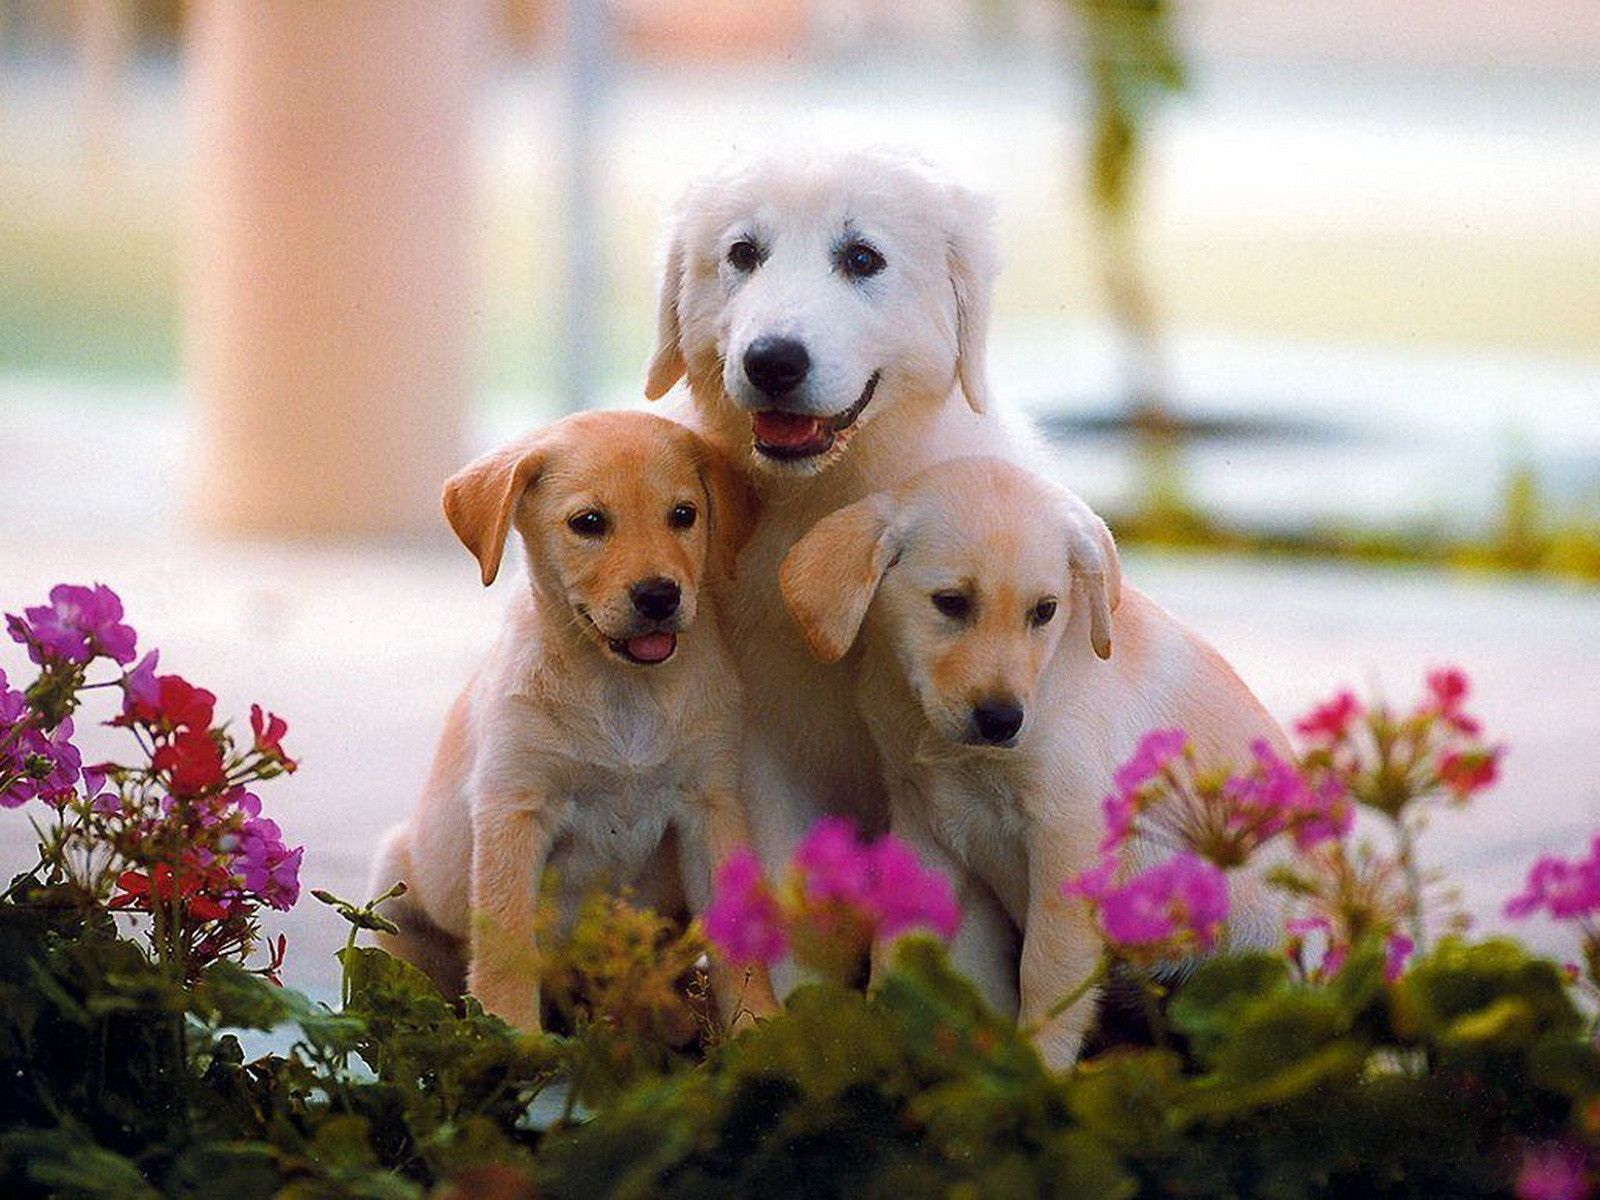 dog wallpapers hd puppy wallpaper free dog wallpapers 1600a—1200 wallpaper dog